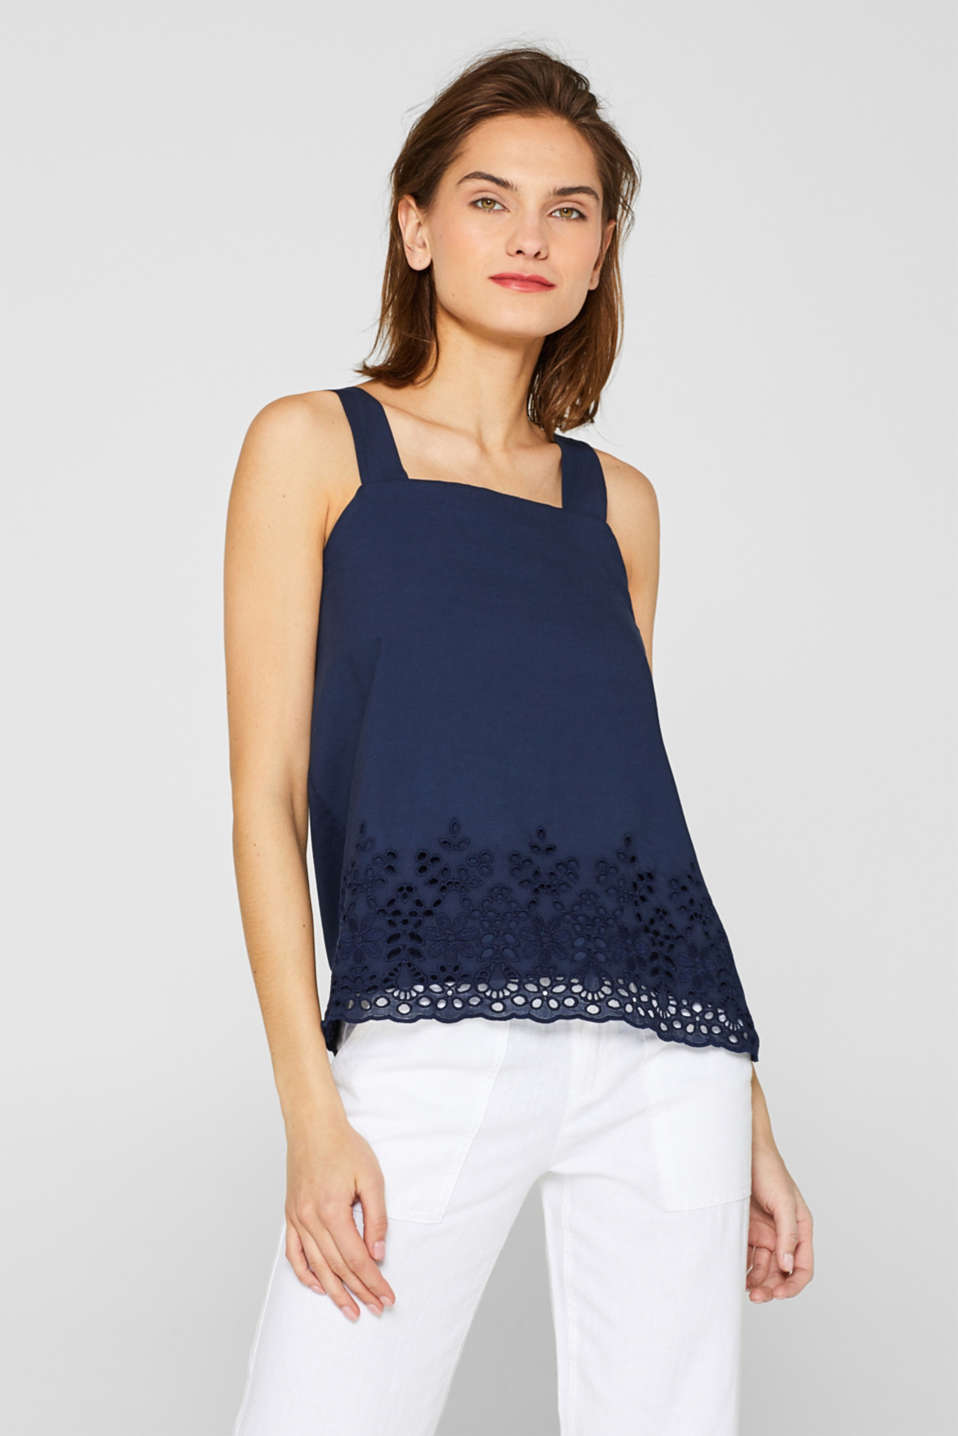 Esprit - Fabric mix top with broderie anglaise